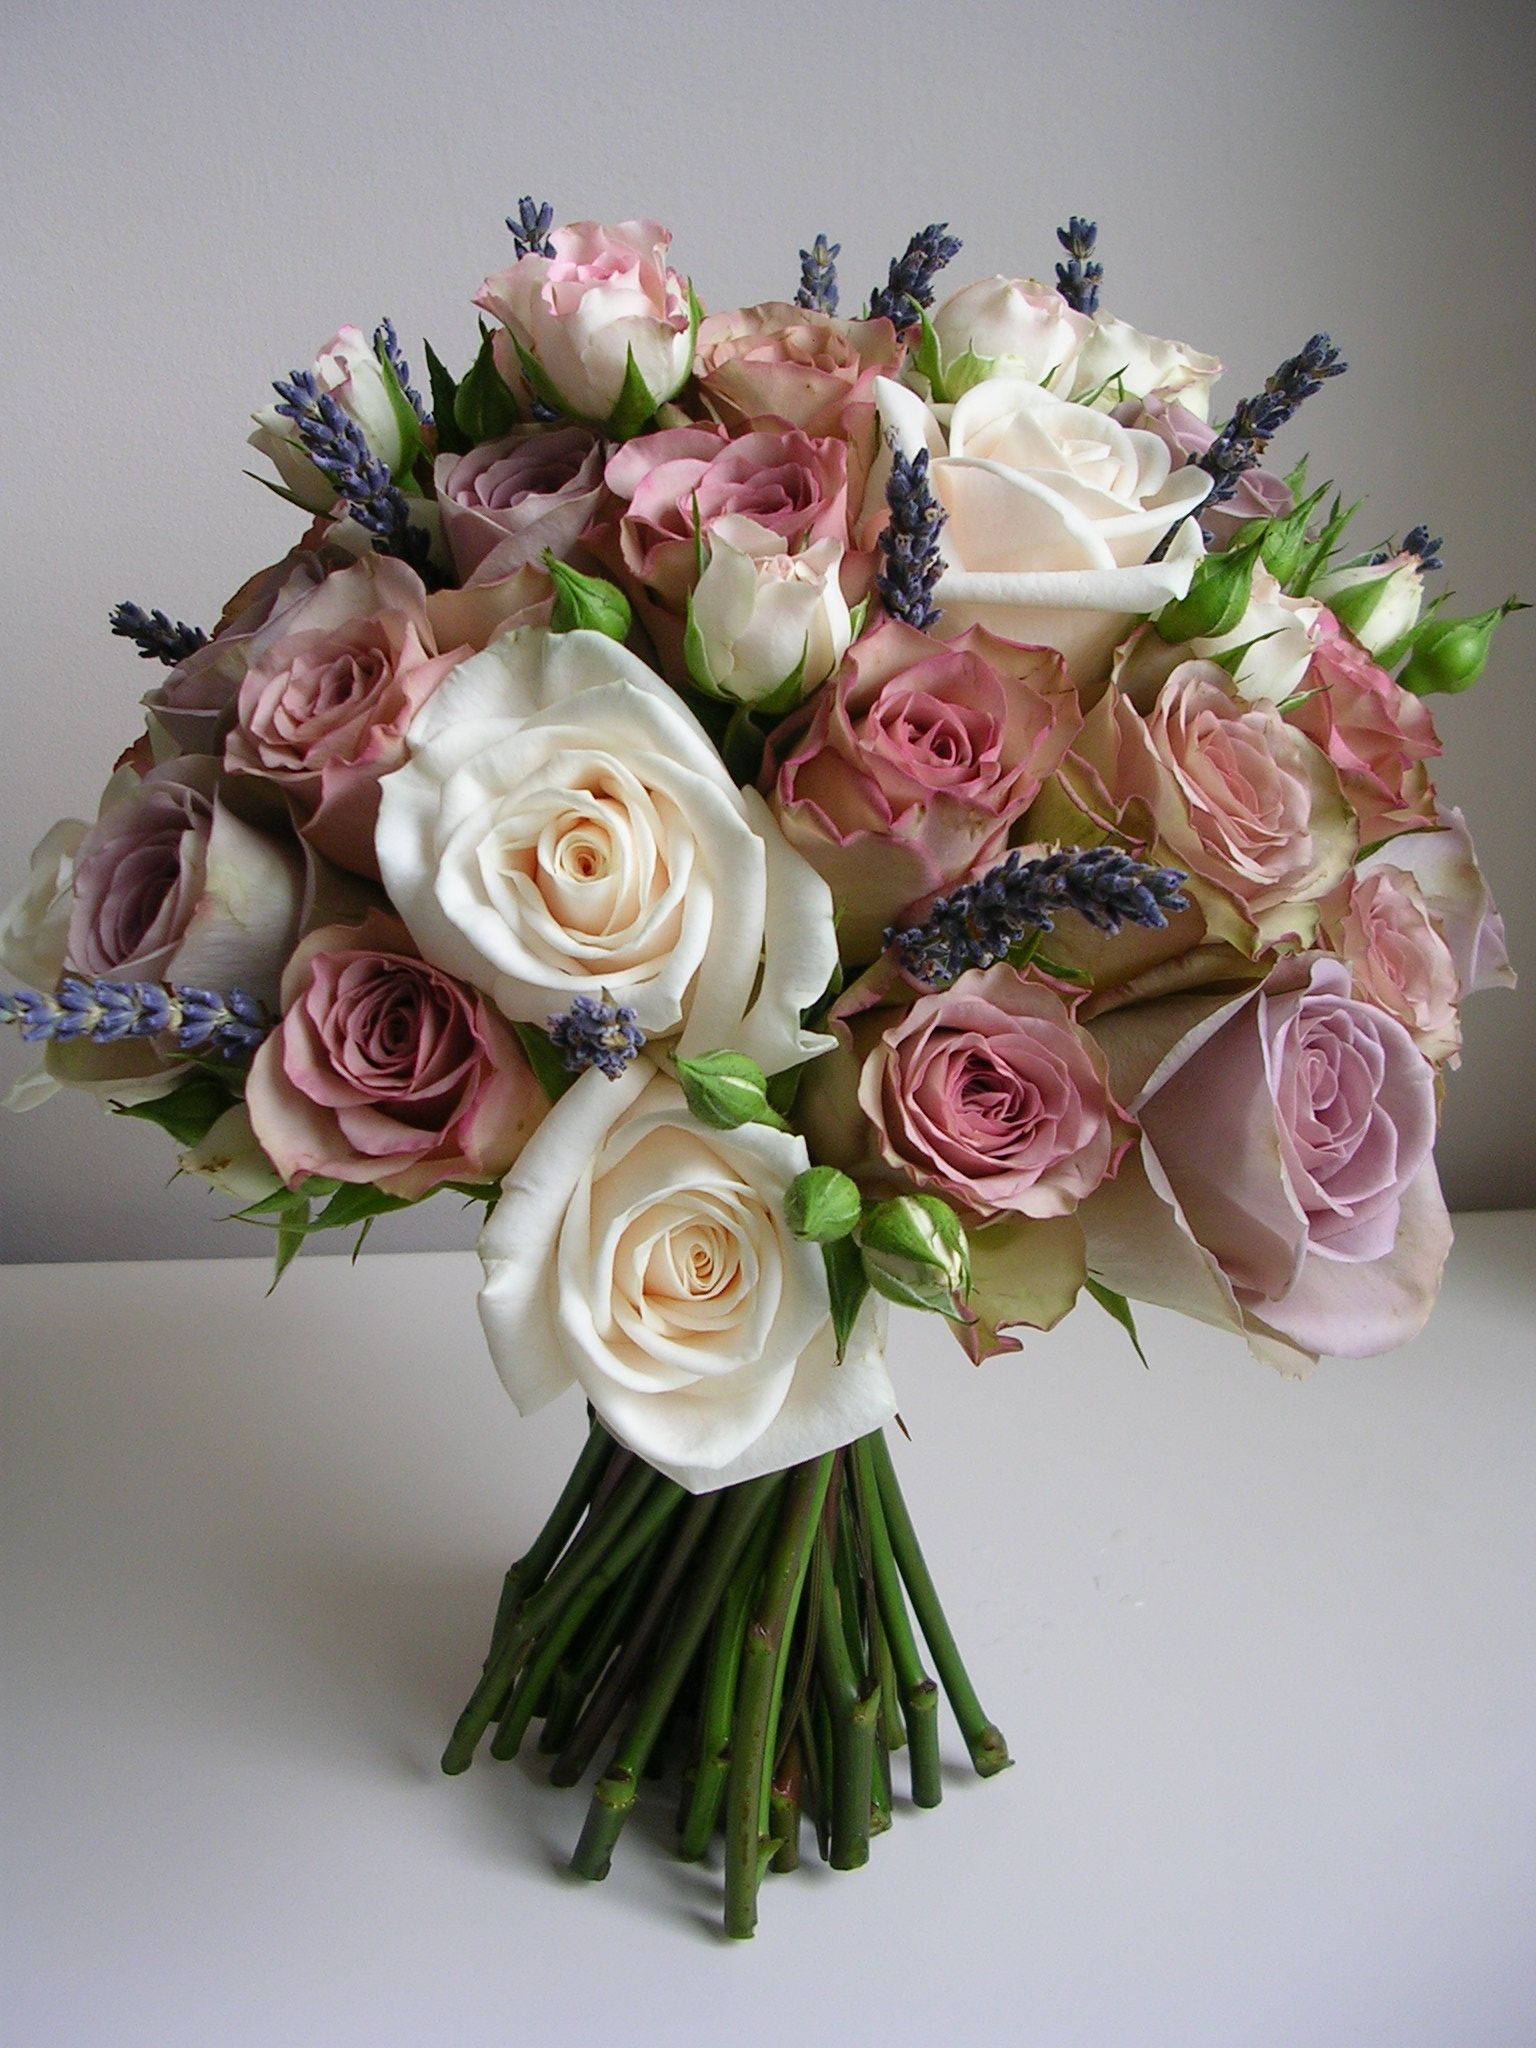 Vinatge Look Handtie Of Dusky Pink Lilac Roses With Cream And